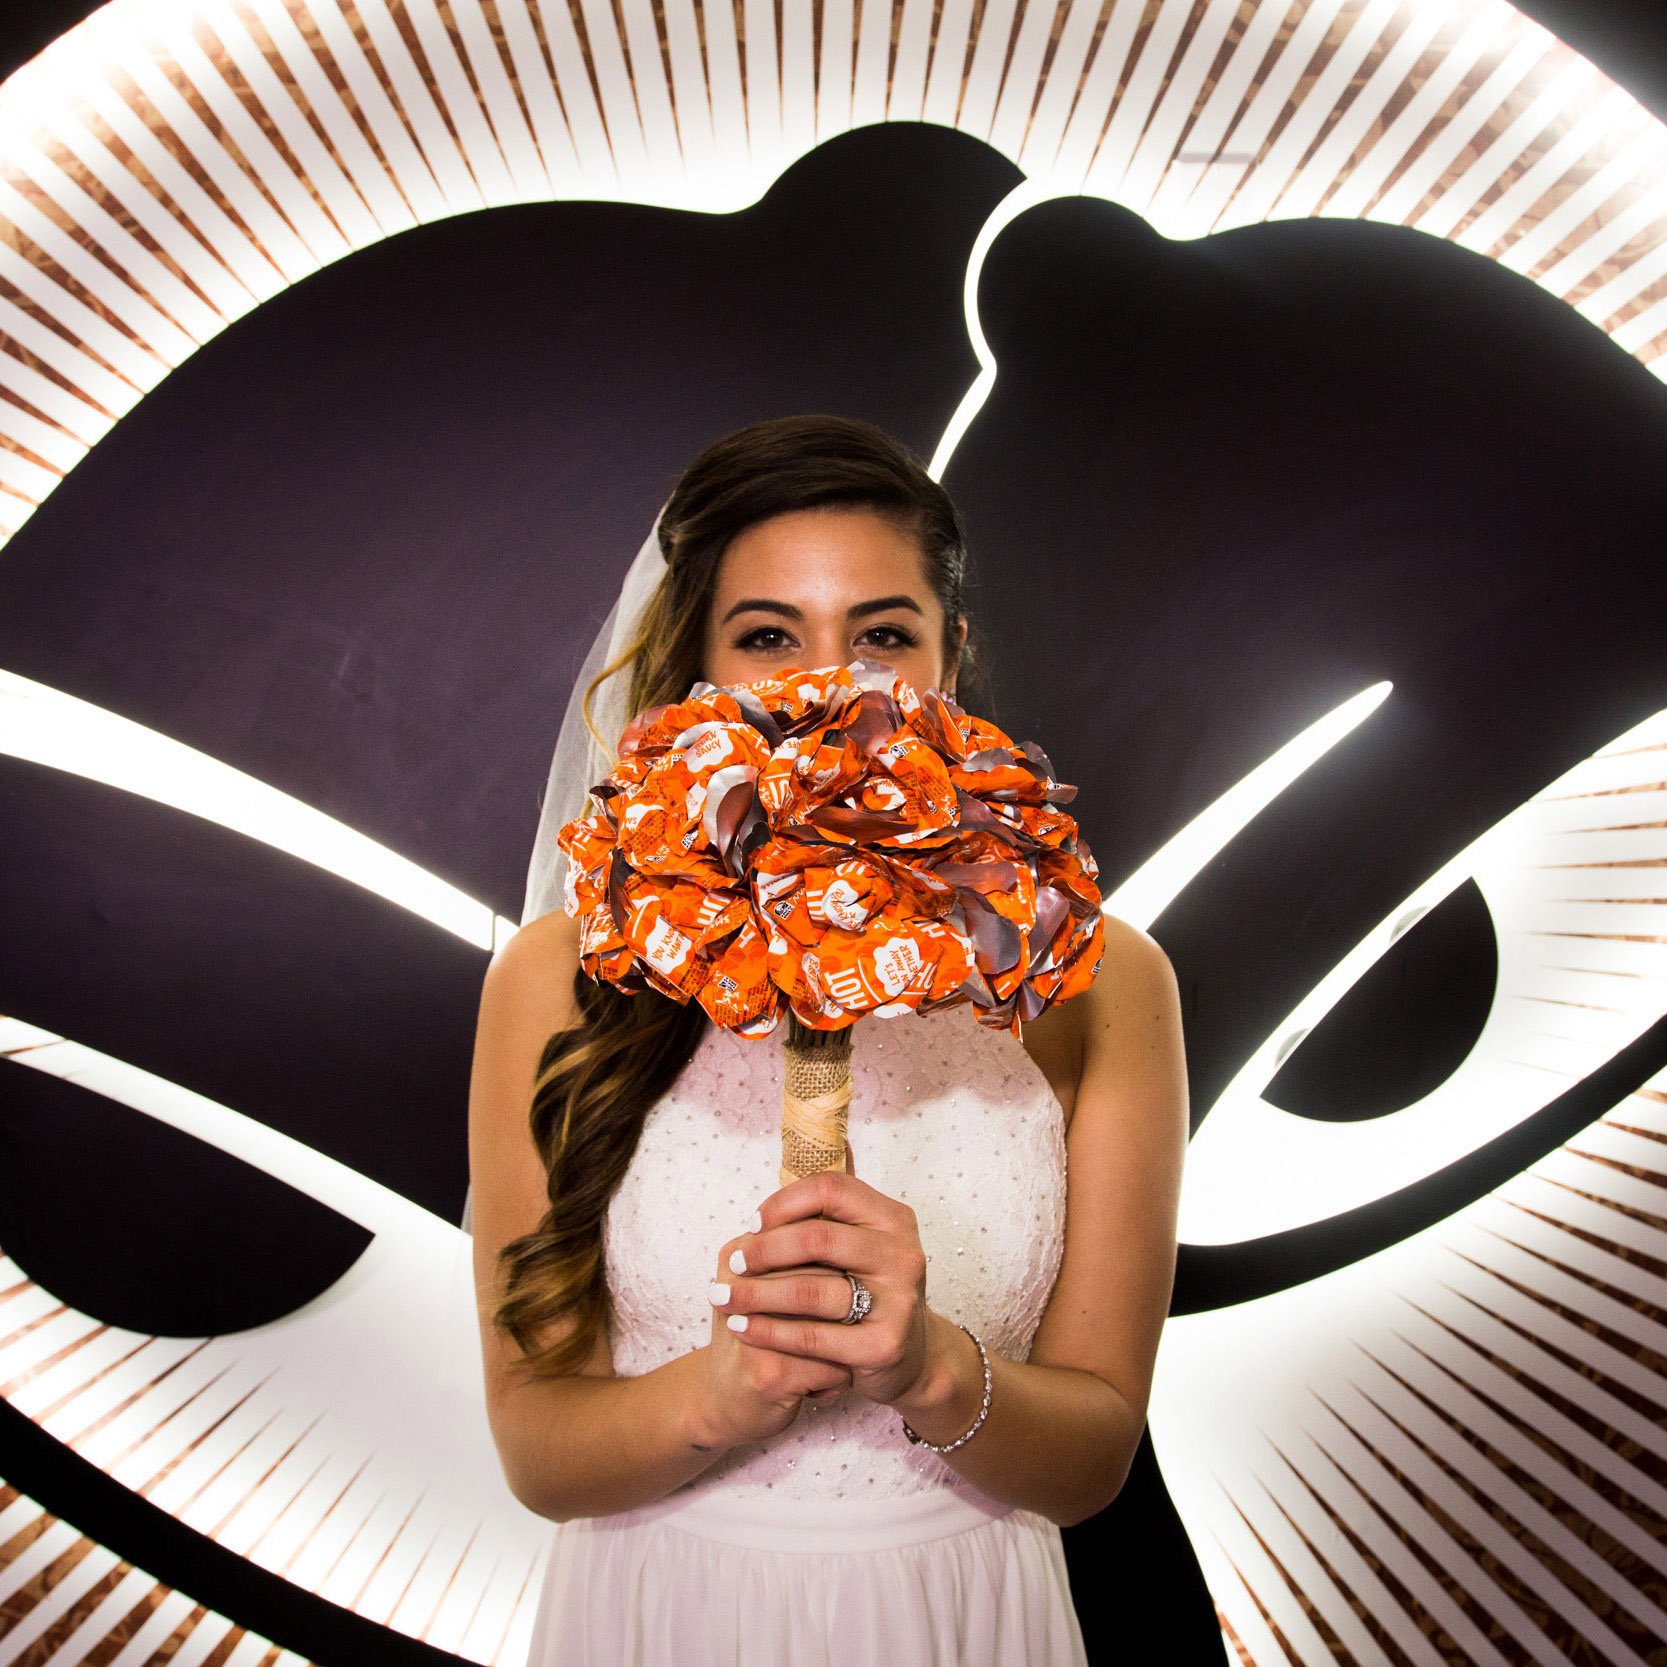 You Can Now Get Married at Taco Bell for $600